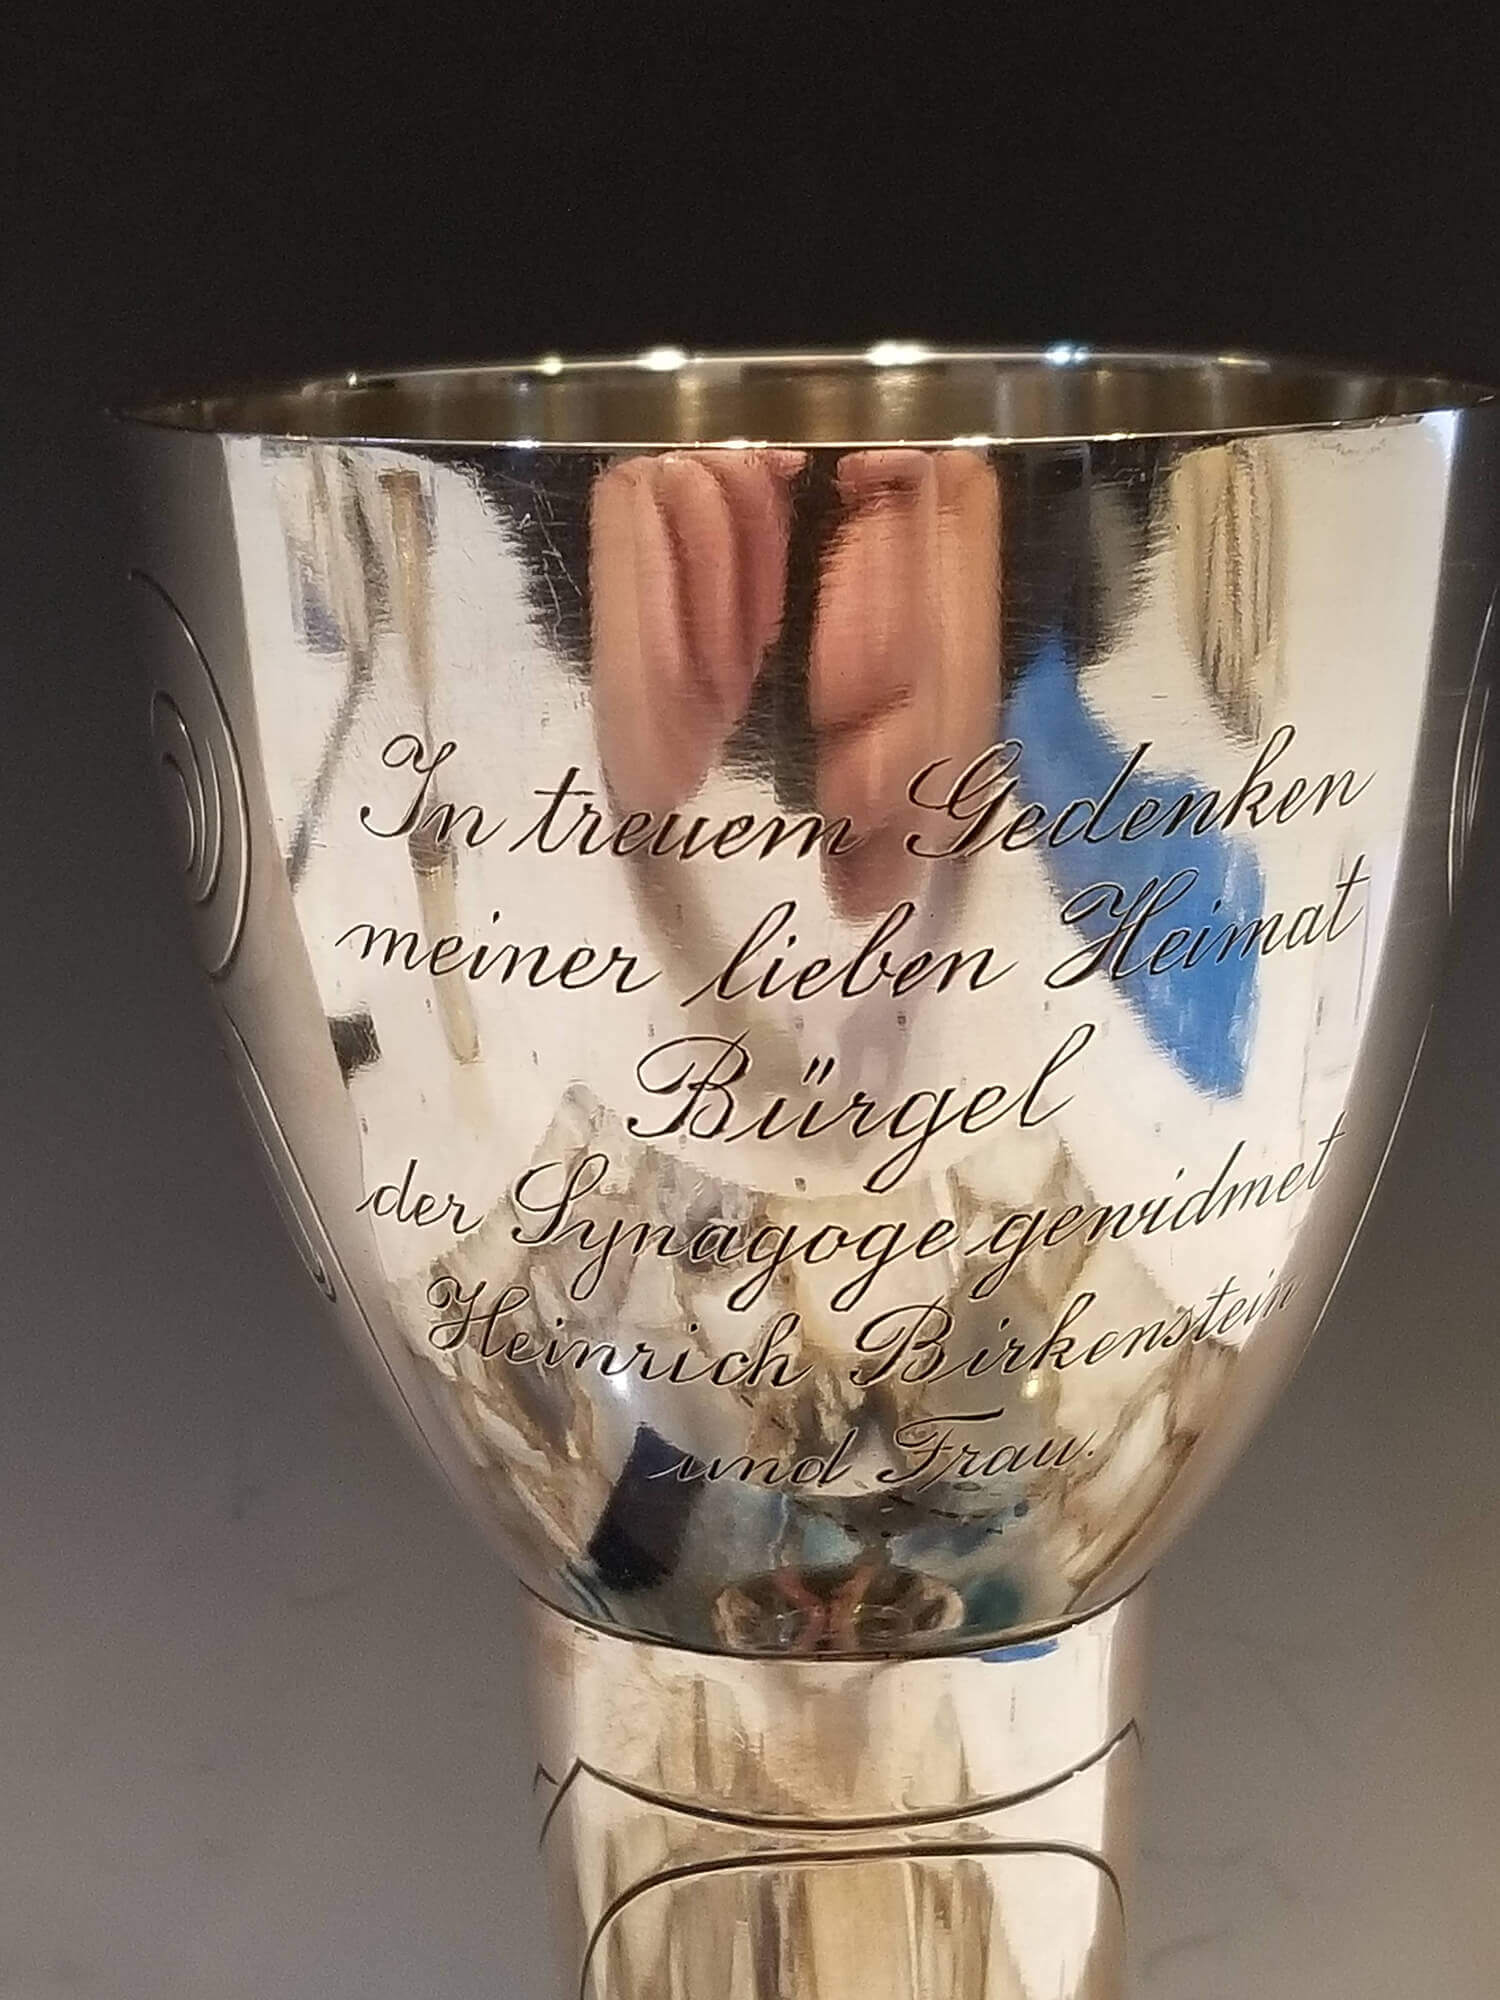 A Rare and Important Art Nouveau Silver Goblet